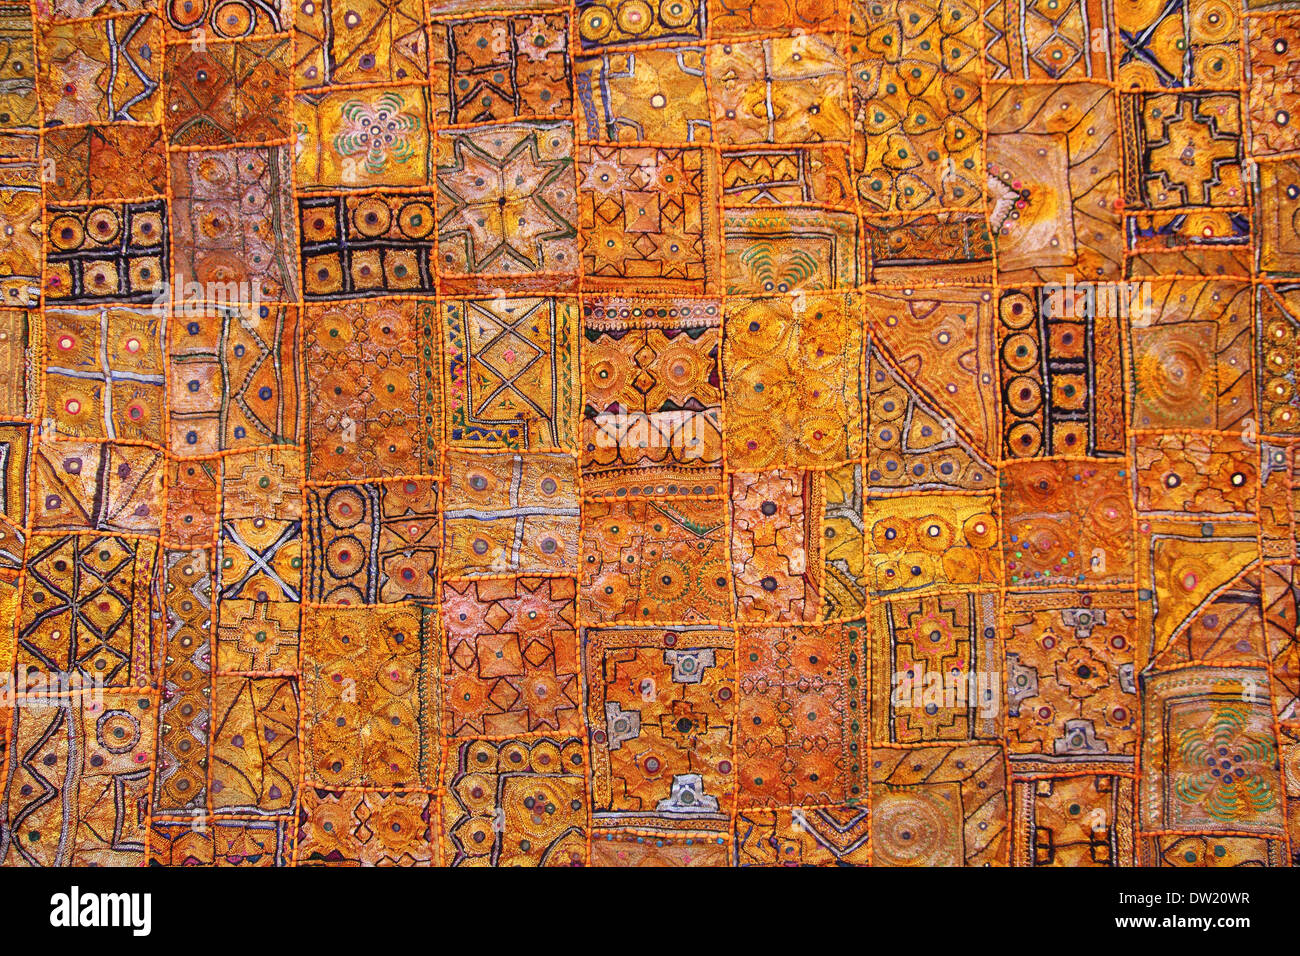 Tissu patchwork fond de l'Inde Photo Stock